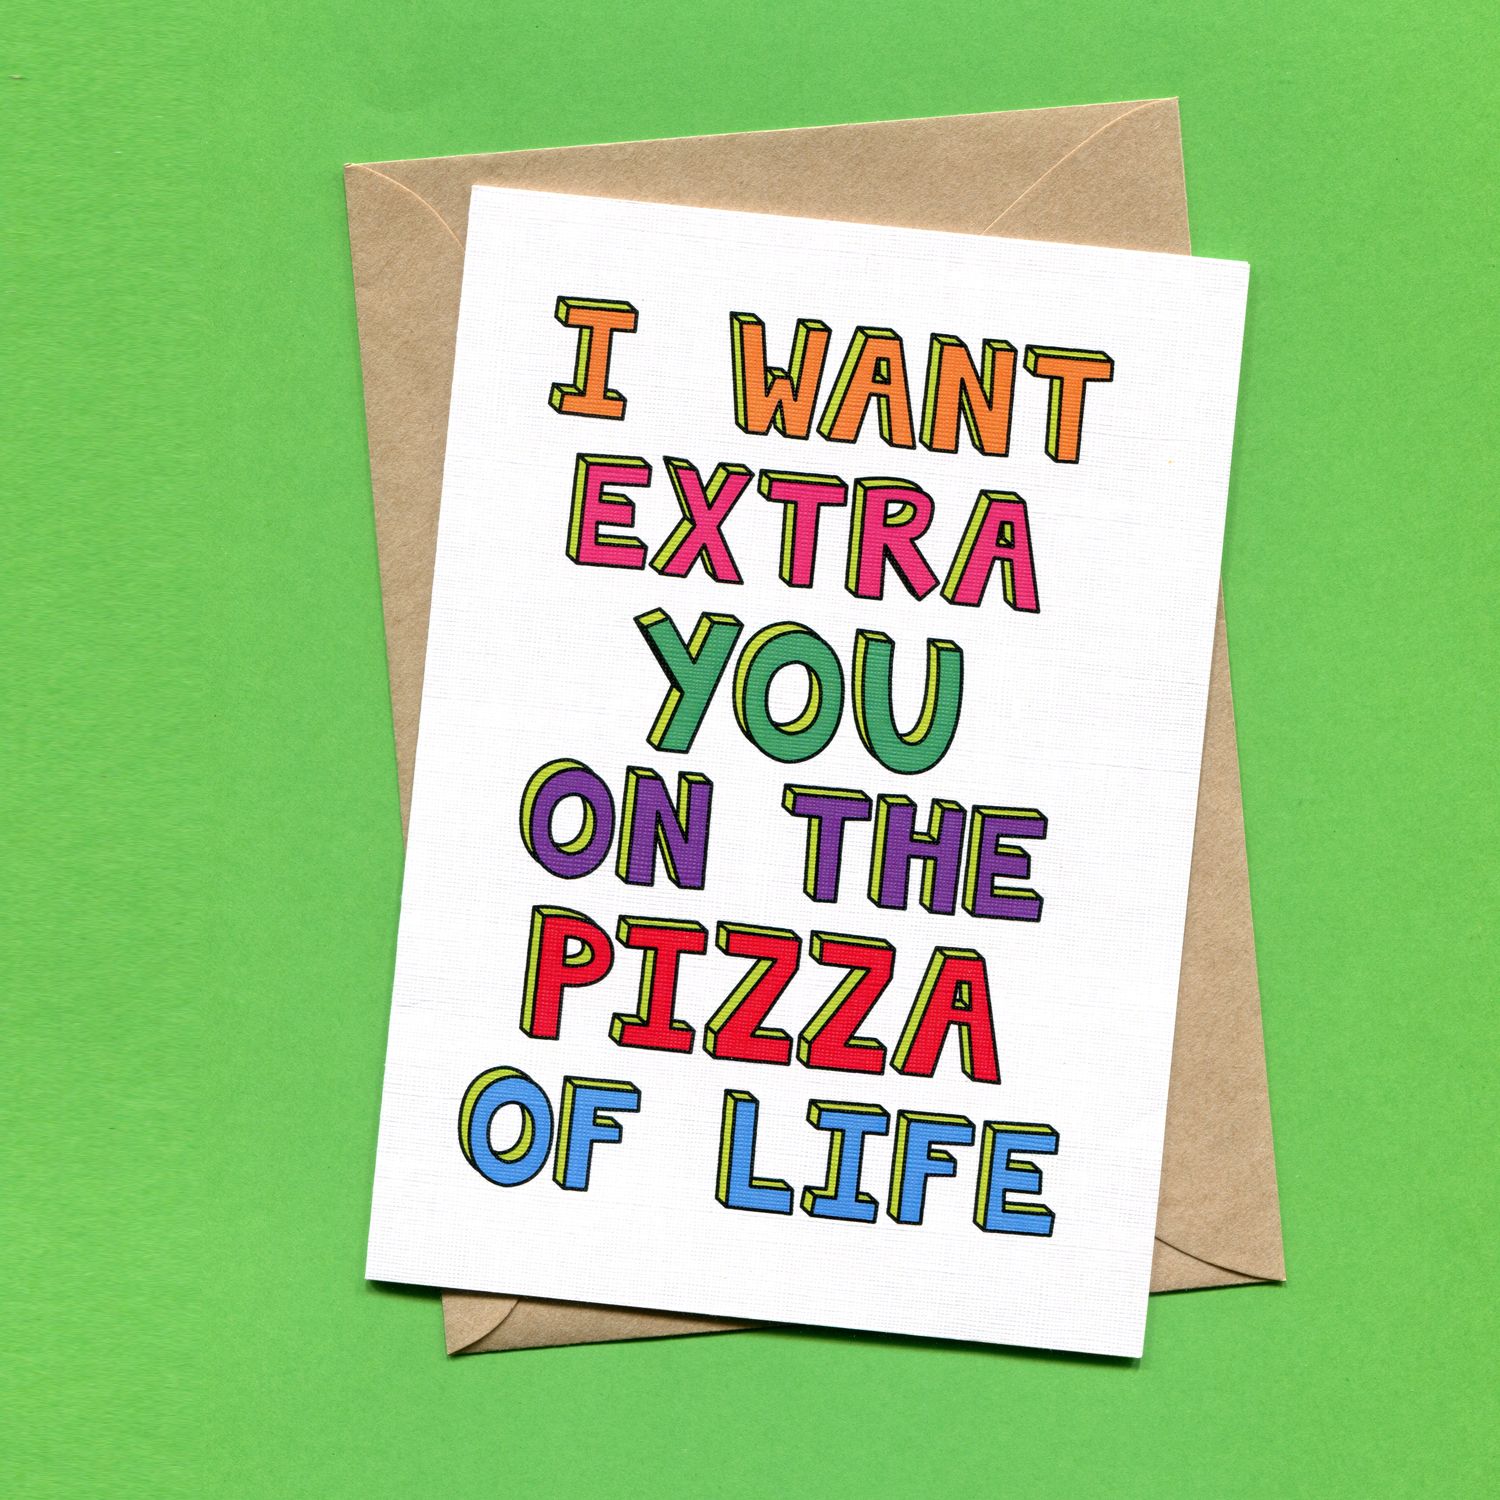 Catalogue_Things by Bean I Want Extra You On The Pizza Of Life Greeting Card.jpg